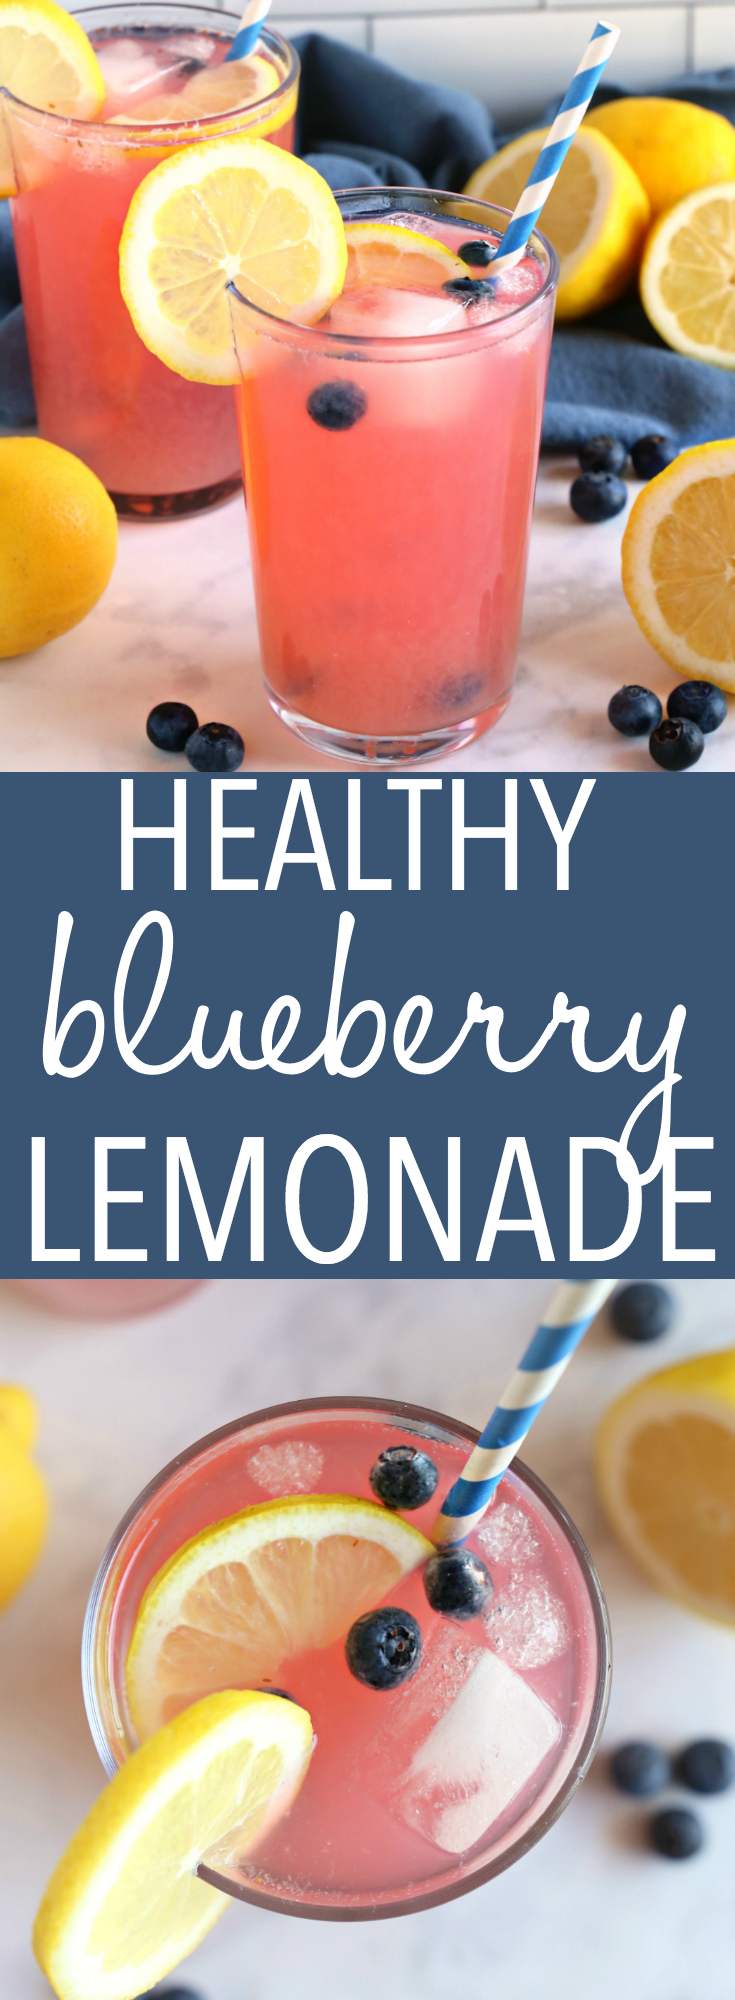 This Healthy Blueberry Lemonade is the perfect healthy summer drink for berry lovers! It's so easy to make with fresh fruit and no refined sugar! Recipe from thebusybaker.ca! #healthylemonade #lemonadesugarfree #blueberrylemonade via @busybakerblog